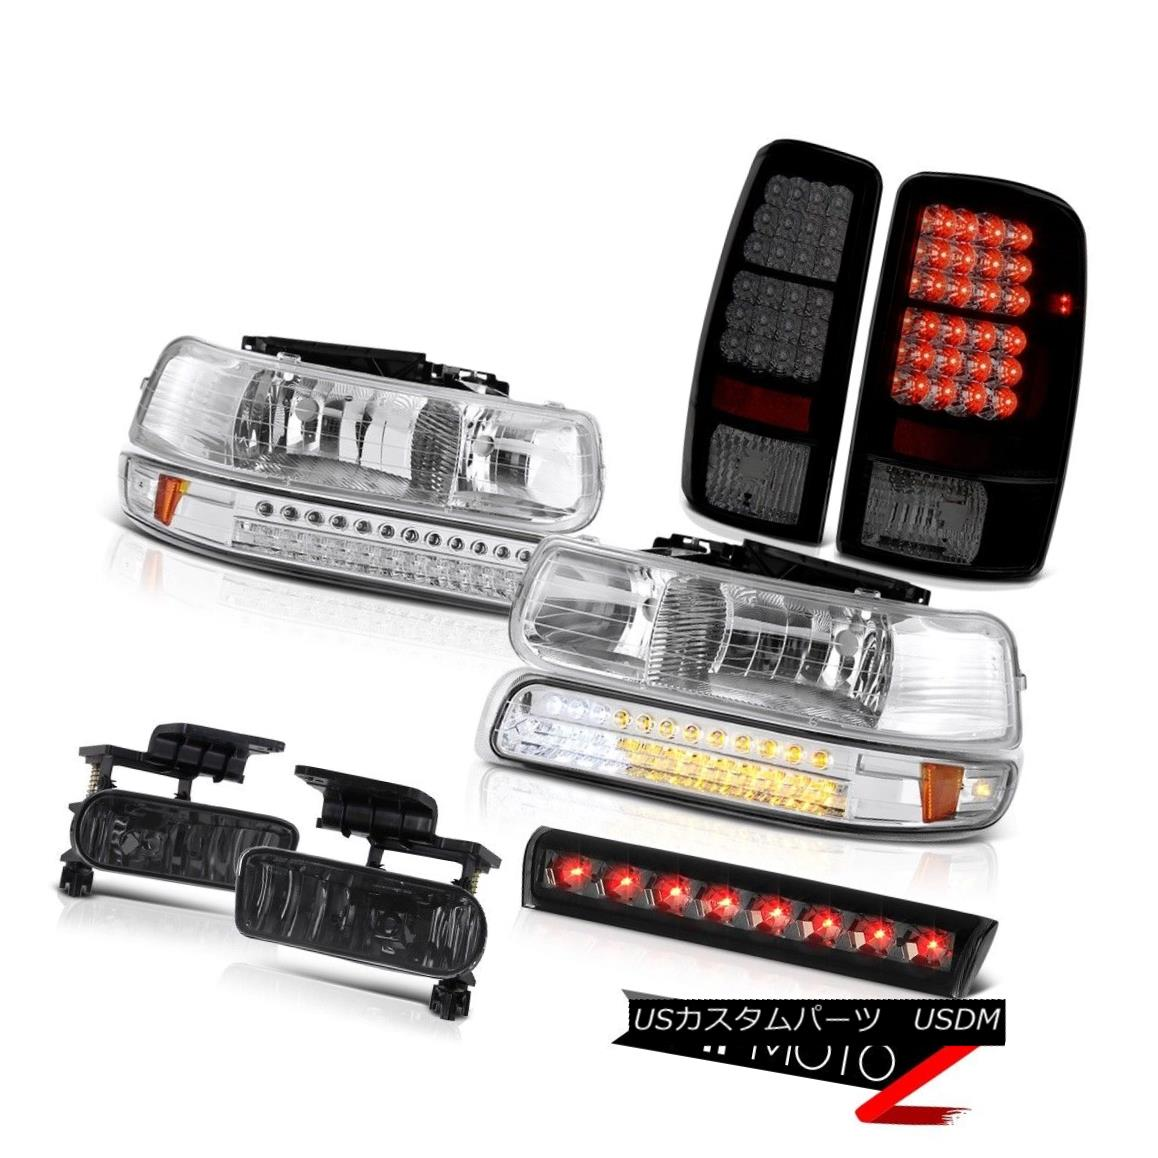 テールライト 00-06 Chevy Tahoe LT Smokey 3rd brake lamp fog lights tail lamps Headlights LED 00-06 Chevy Tahoe LT Smokey第3ブレーキランプフォグライトテールランプヘッドライトLED